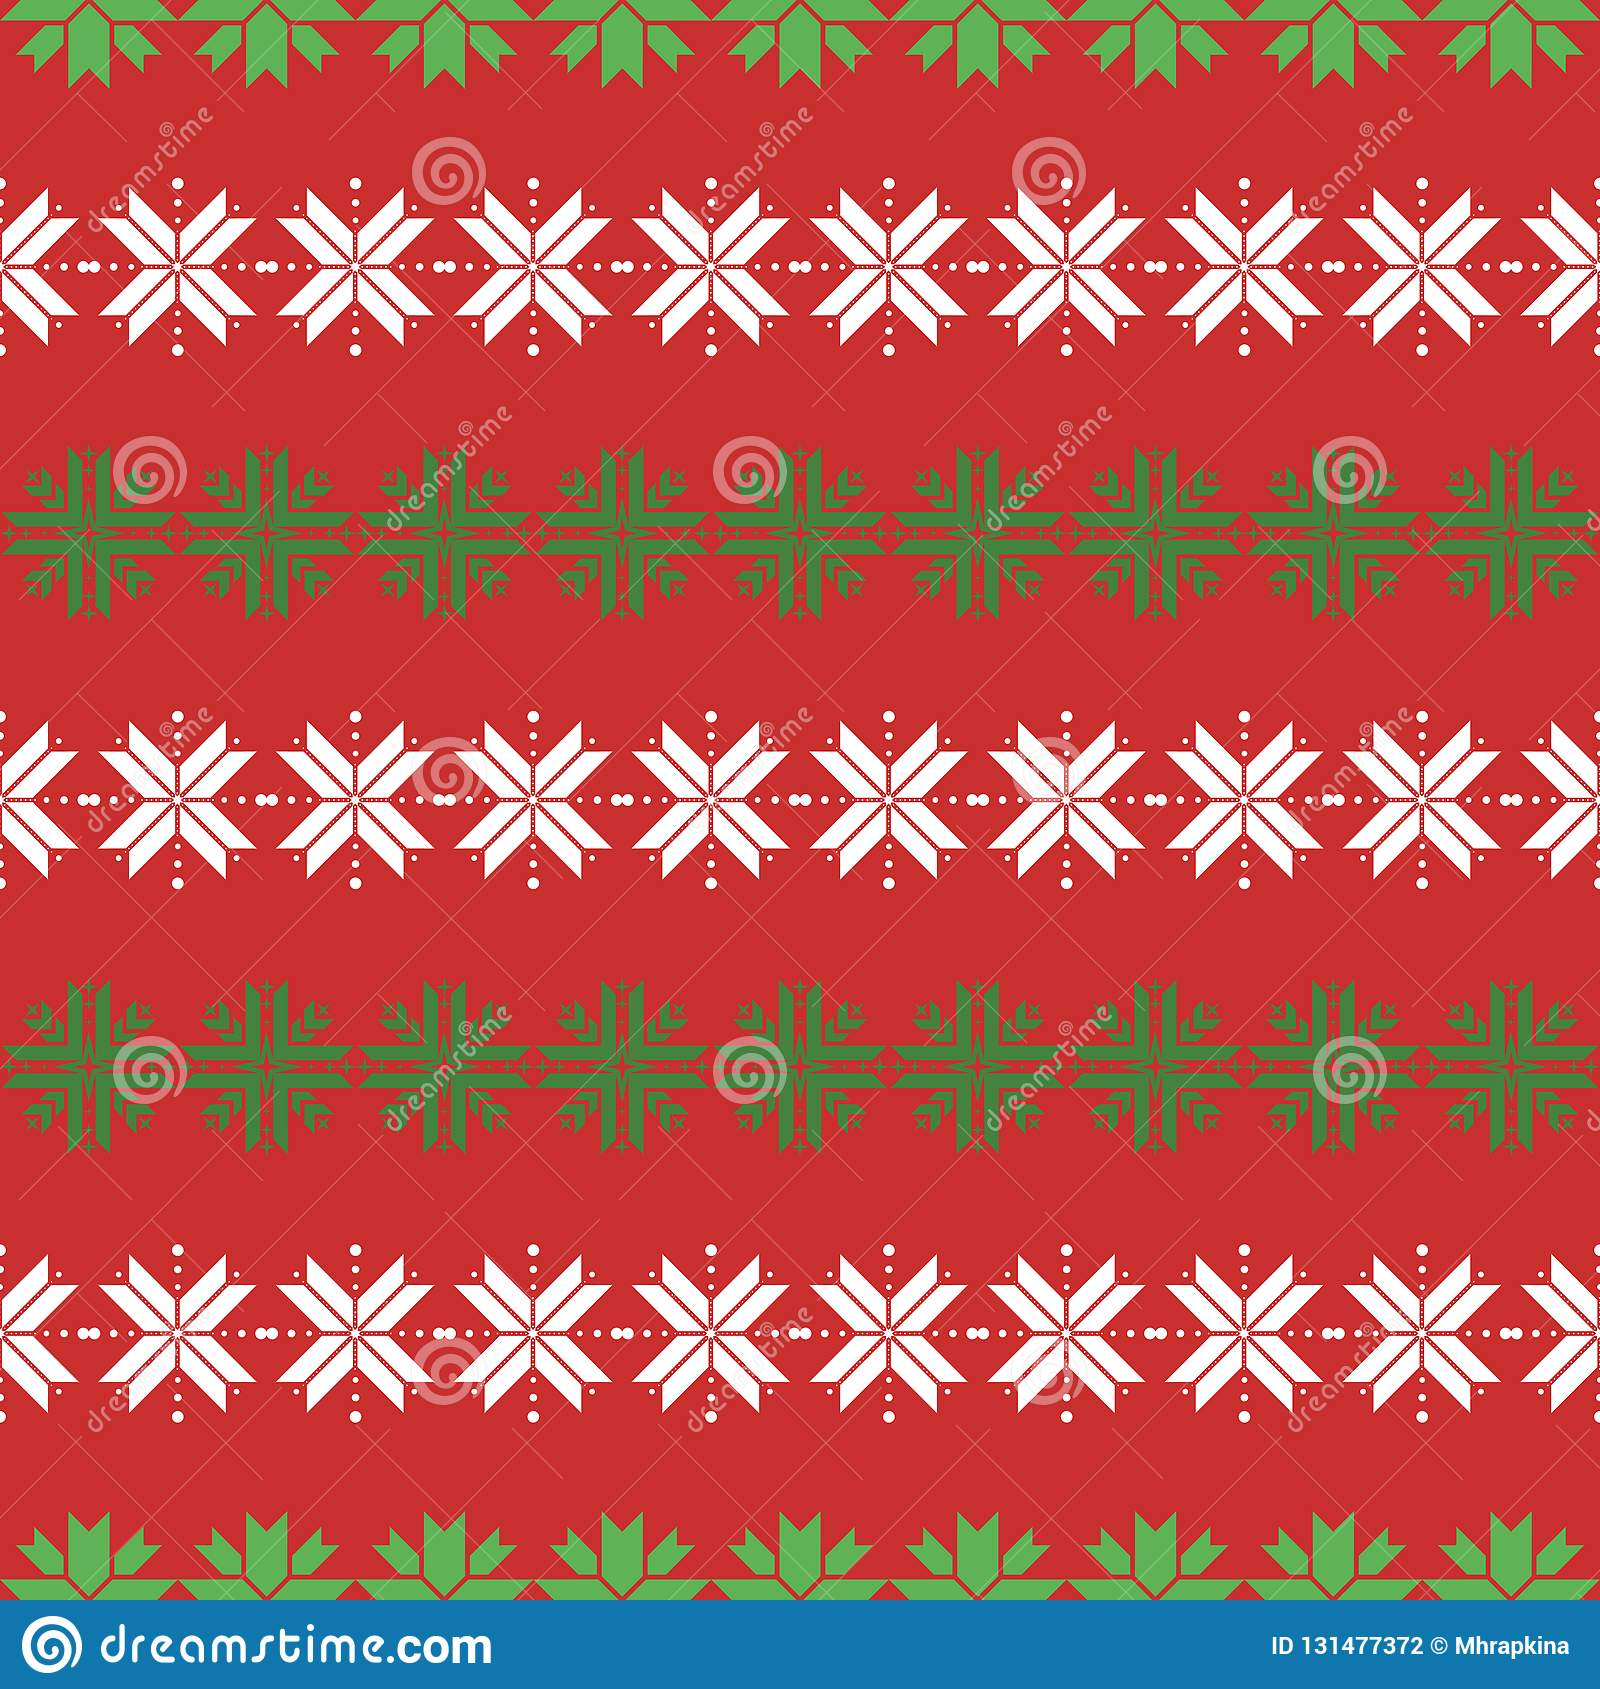 b0df827b08a0 Seamless christmas pattern with snowflakes. traditional sweater pattern  with white and geen geometric snowflakes on red background